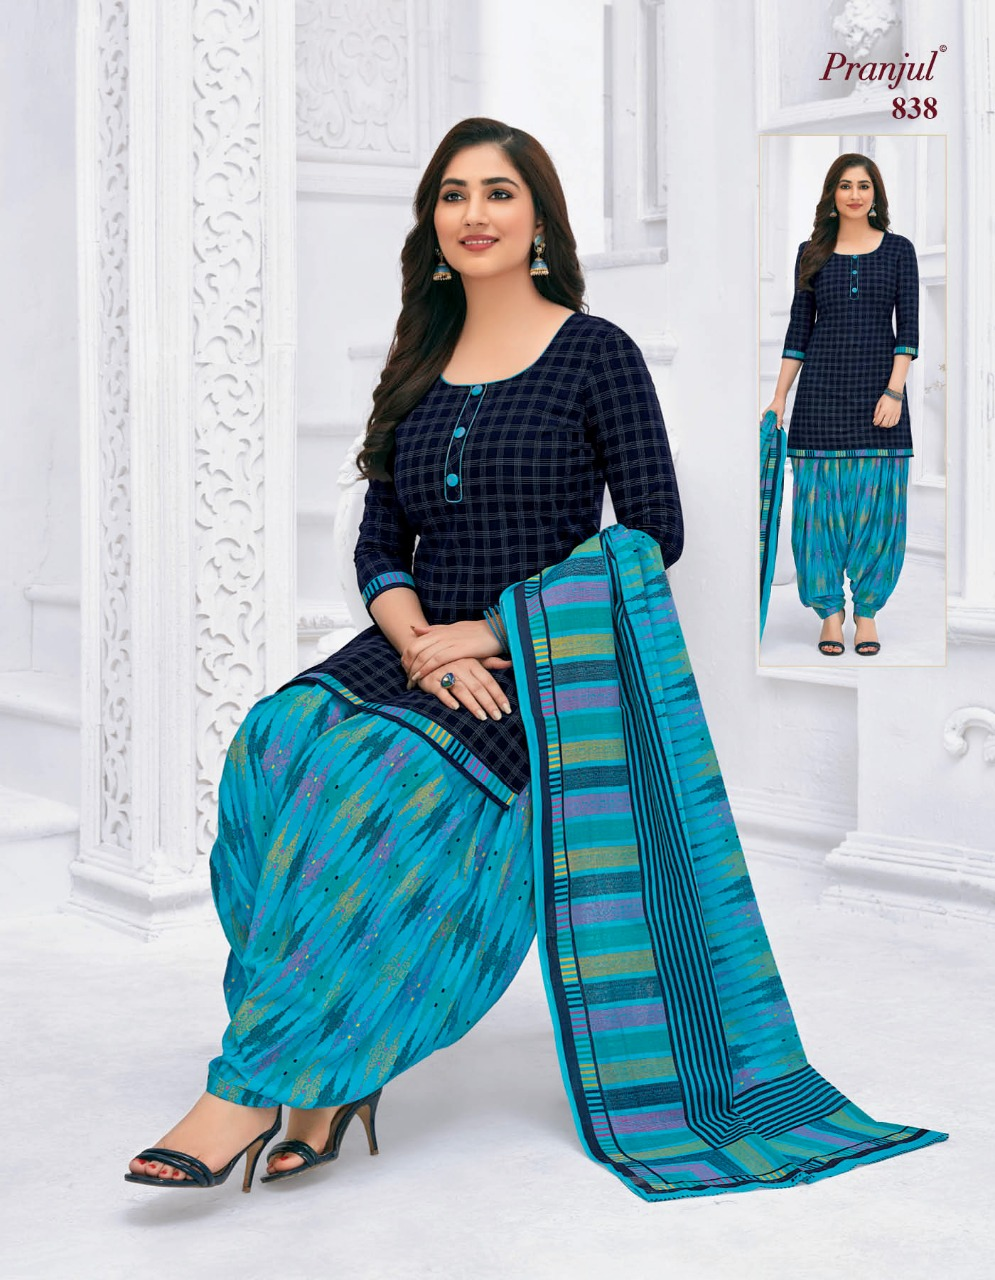 Pranjul Priyanka Vol 8 A Readymade Suit Wholesale Catalog 15 Pcs 18 - Pranjul Priyanka Vol 8 A Readymade Suit Wholesale Catalog 15 Pcs